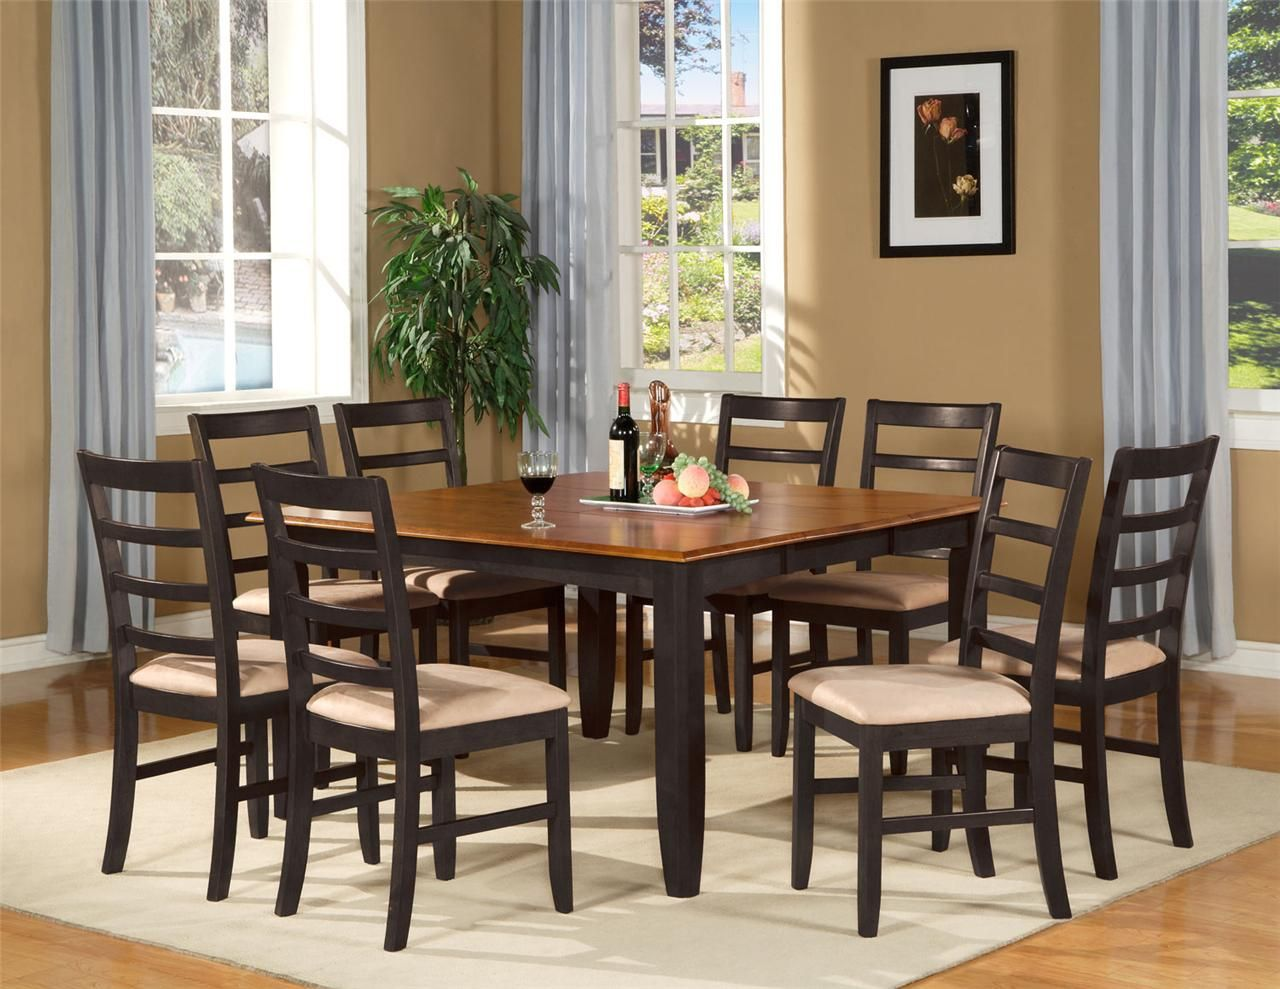 Squre Diing Room Tables Pc Square Dinette Dining Table Set And 8 Chairs Ebay